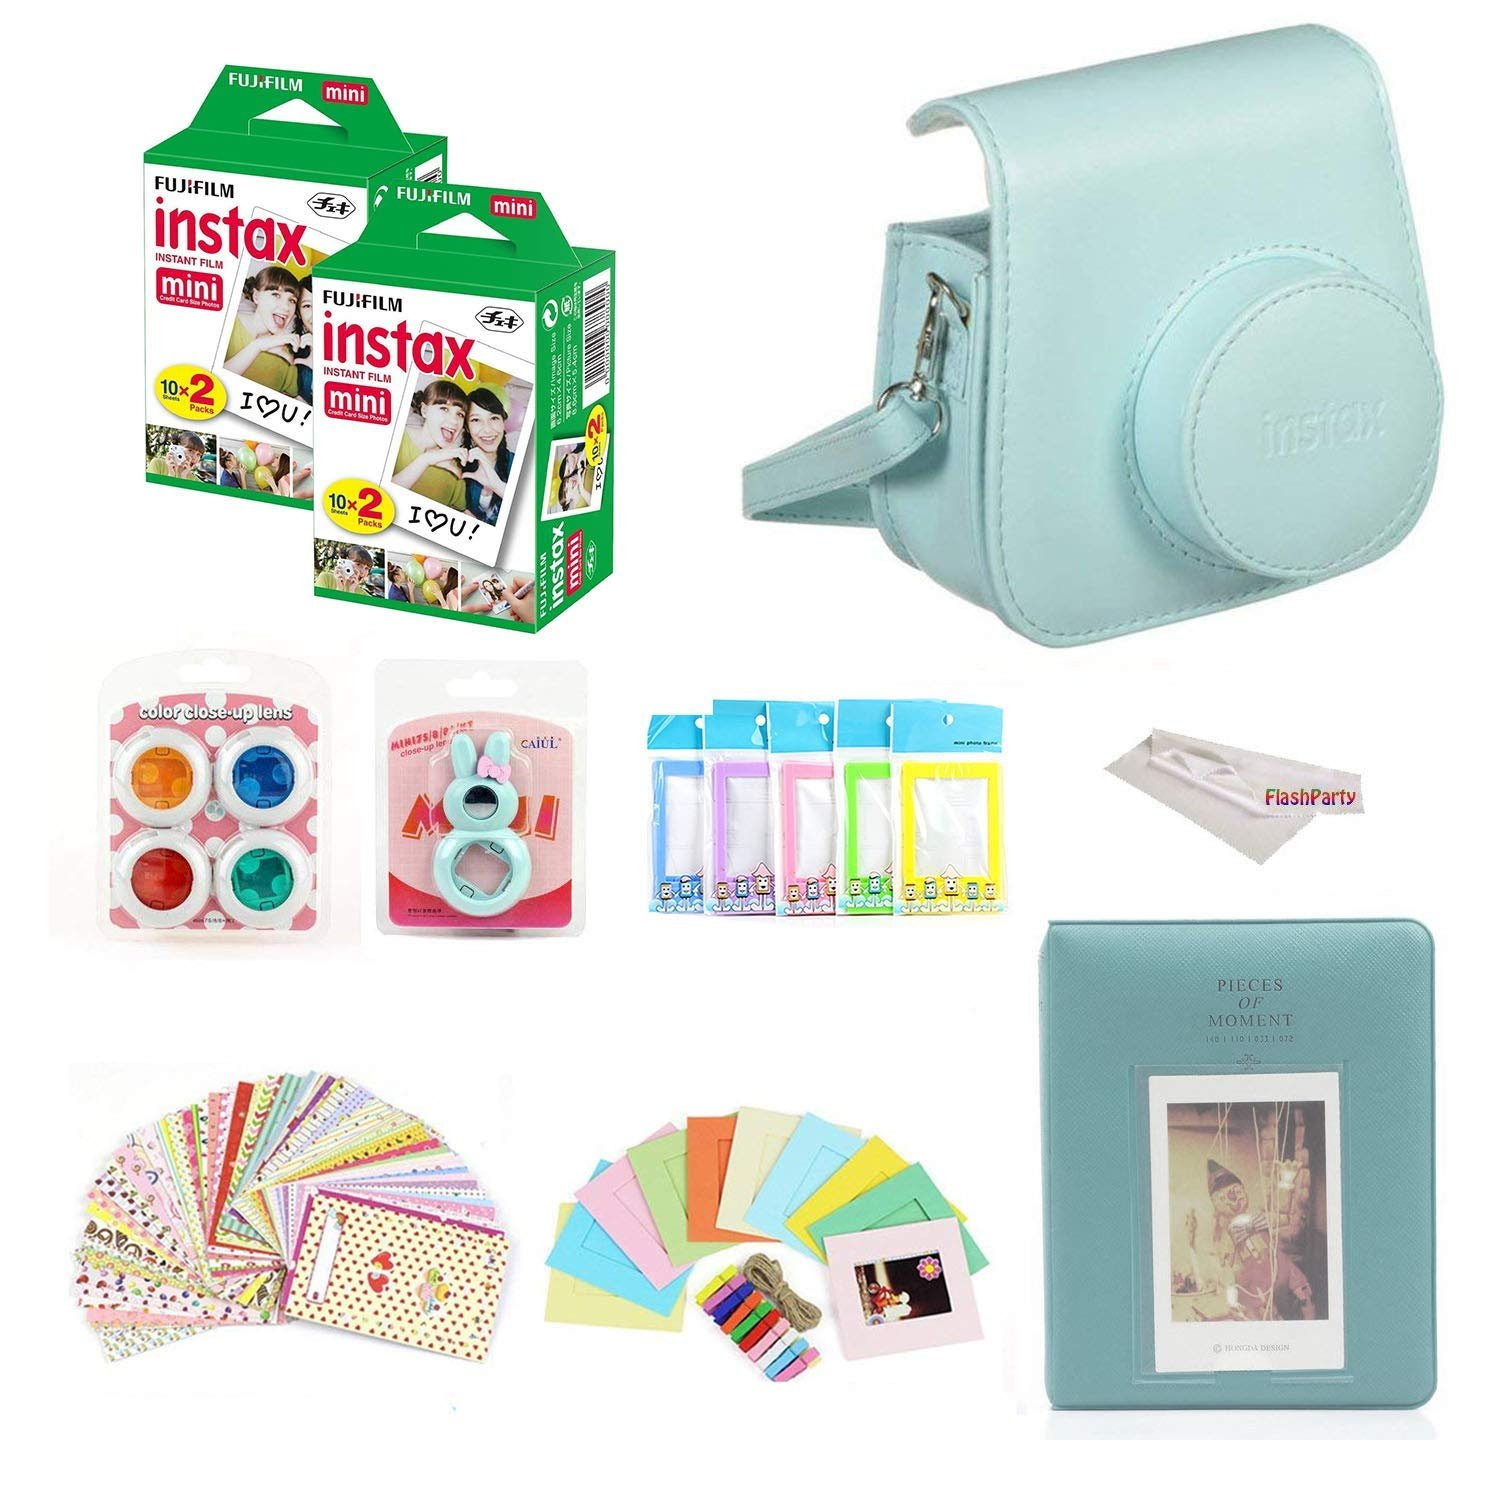 Fuji Instax Mini Instant Film Two Twin Packs (40 Sheets) + Protective Case + 40 Sticker Frames + Picture Frames + Photo Album + Microfiber Cleaning Cloth + More Accessories (Ice Blue)